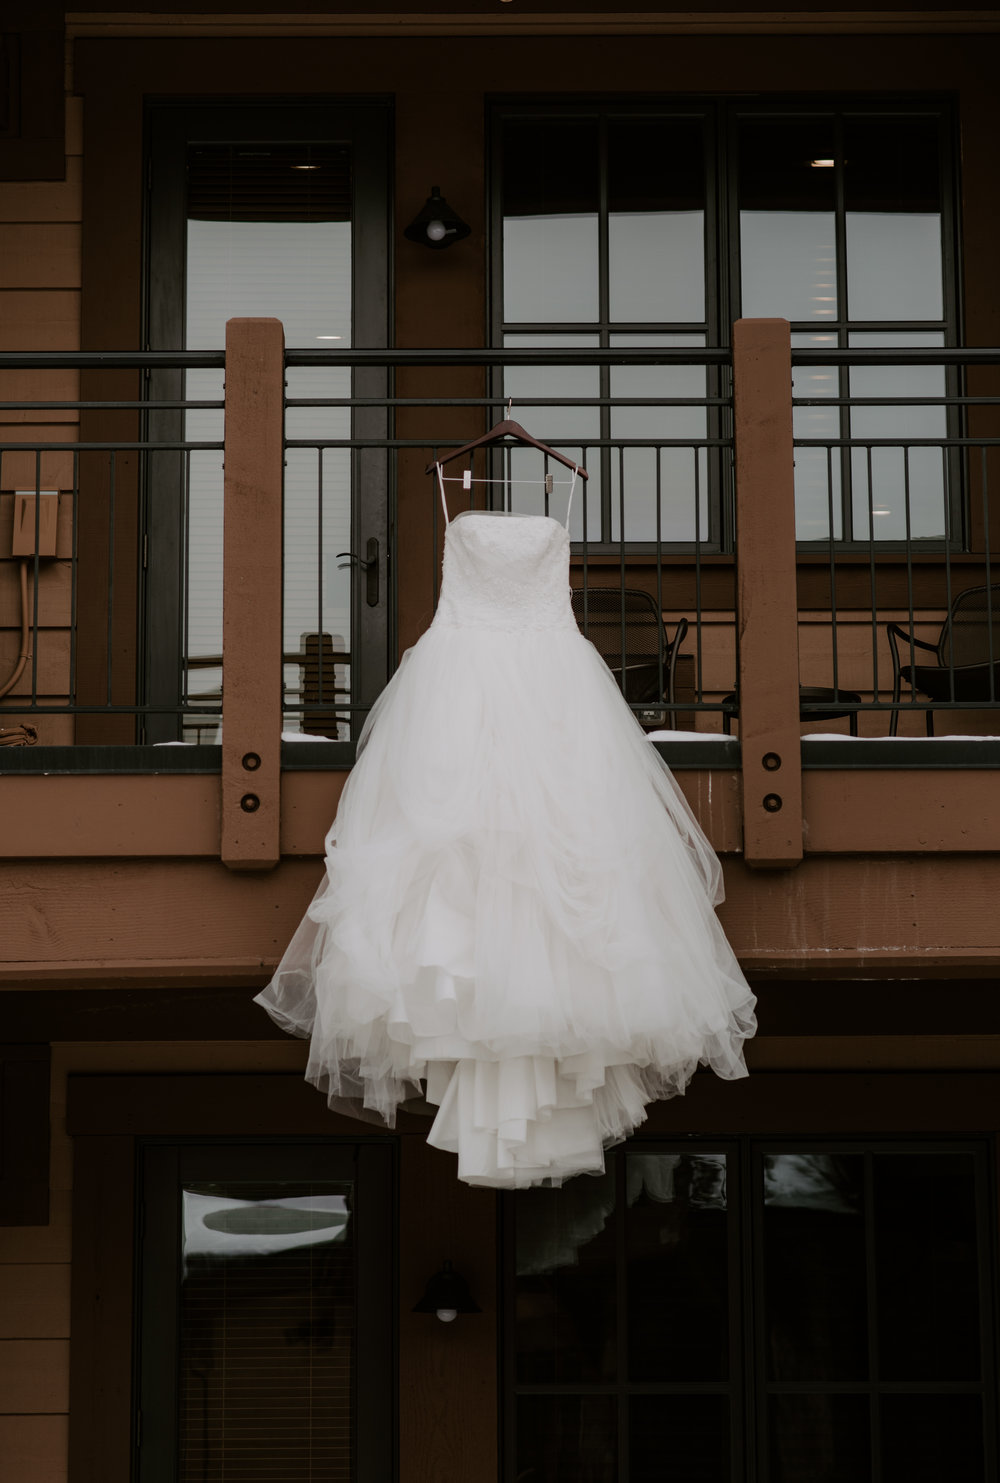 Wedding dress shot by Alyssa Reinhold, Colorado wedding photographer.